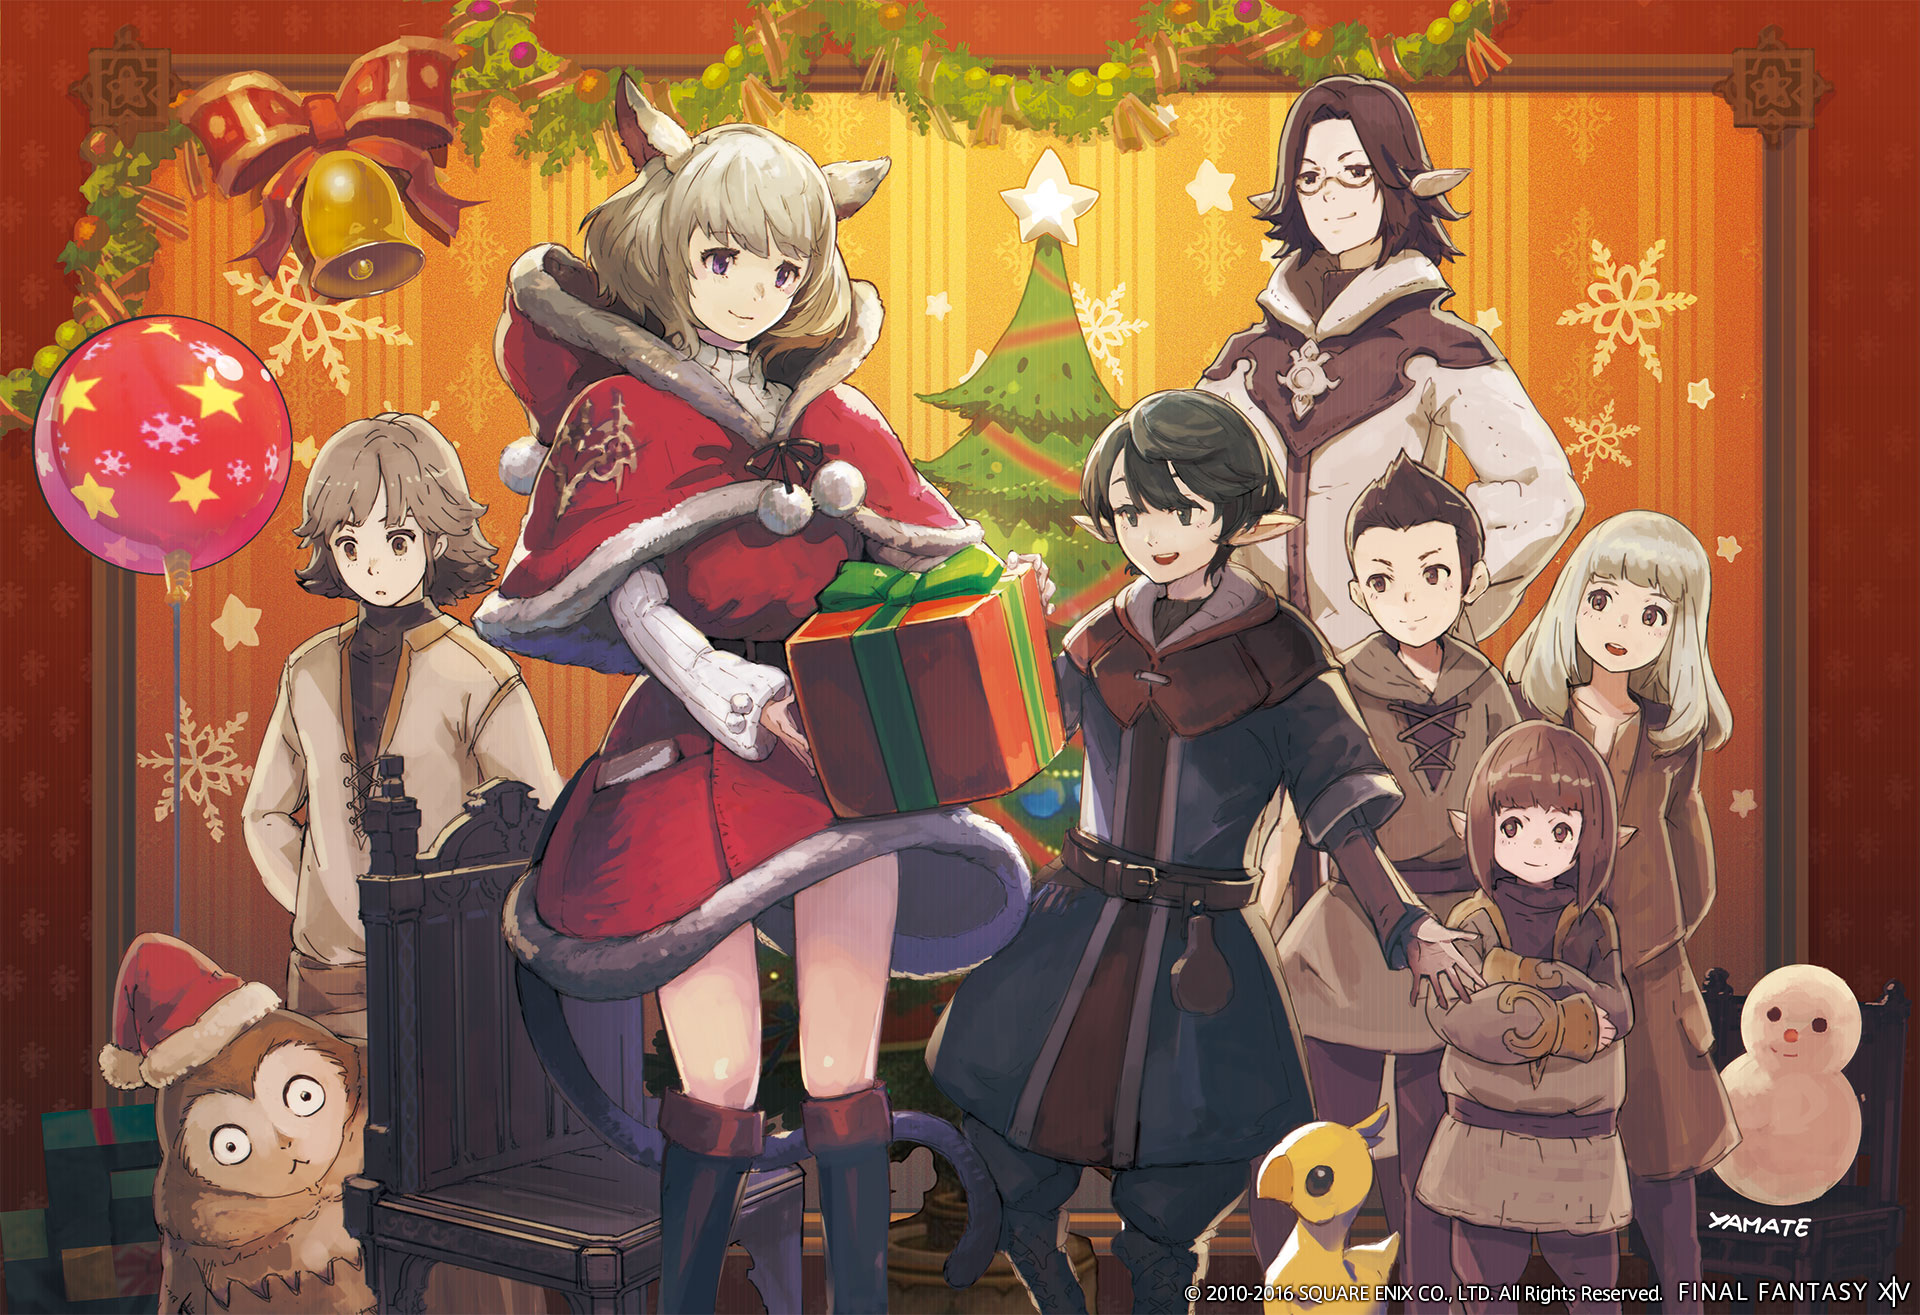 Ffxiv Christmas 2019 Starlight Celebration 2016 | FINAL FANTASY XIV, The Lodestone